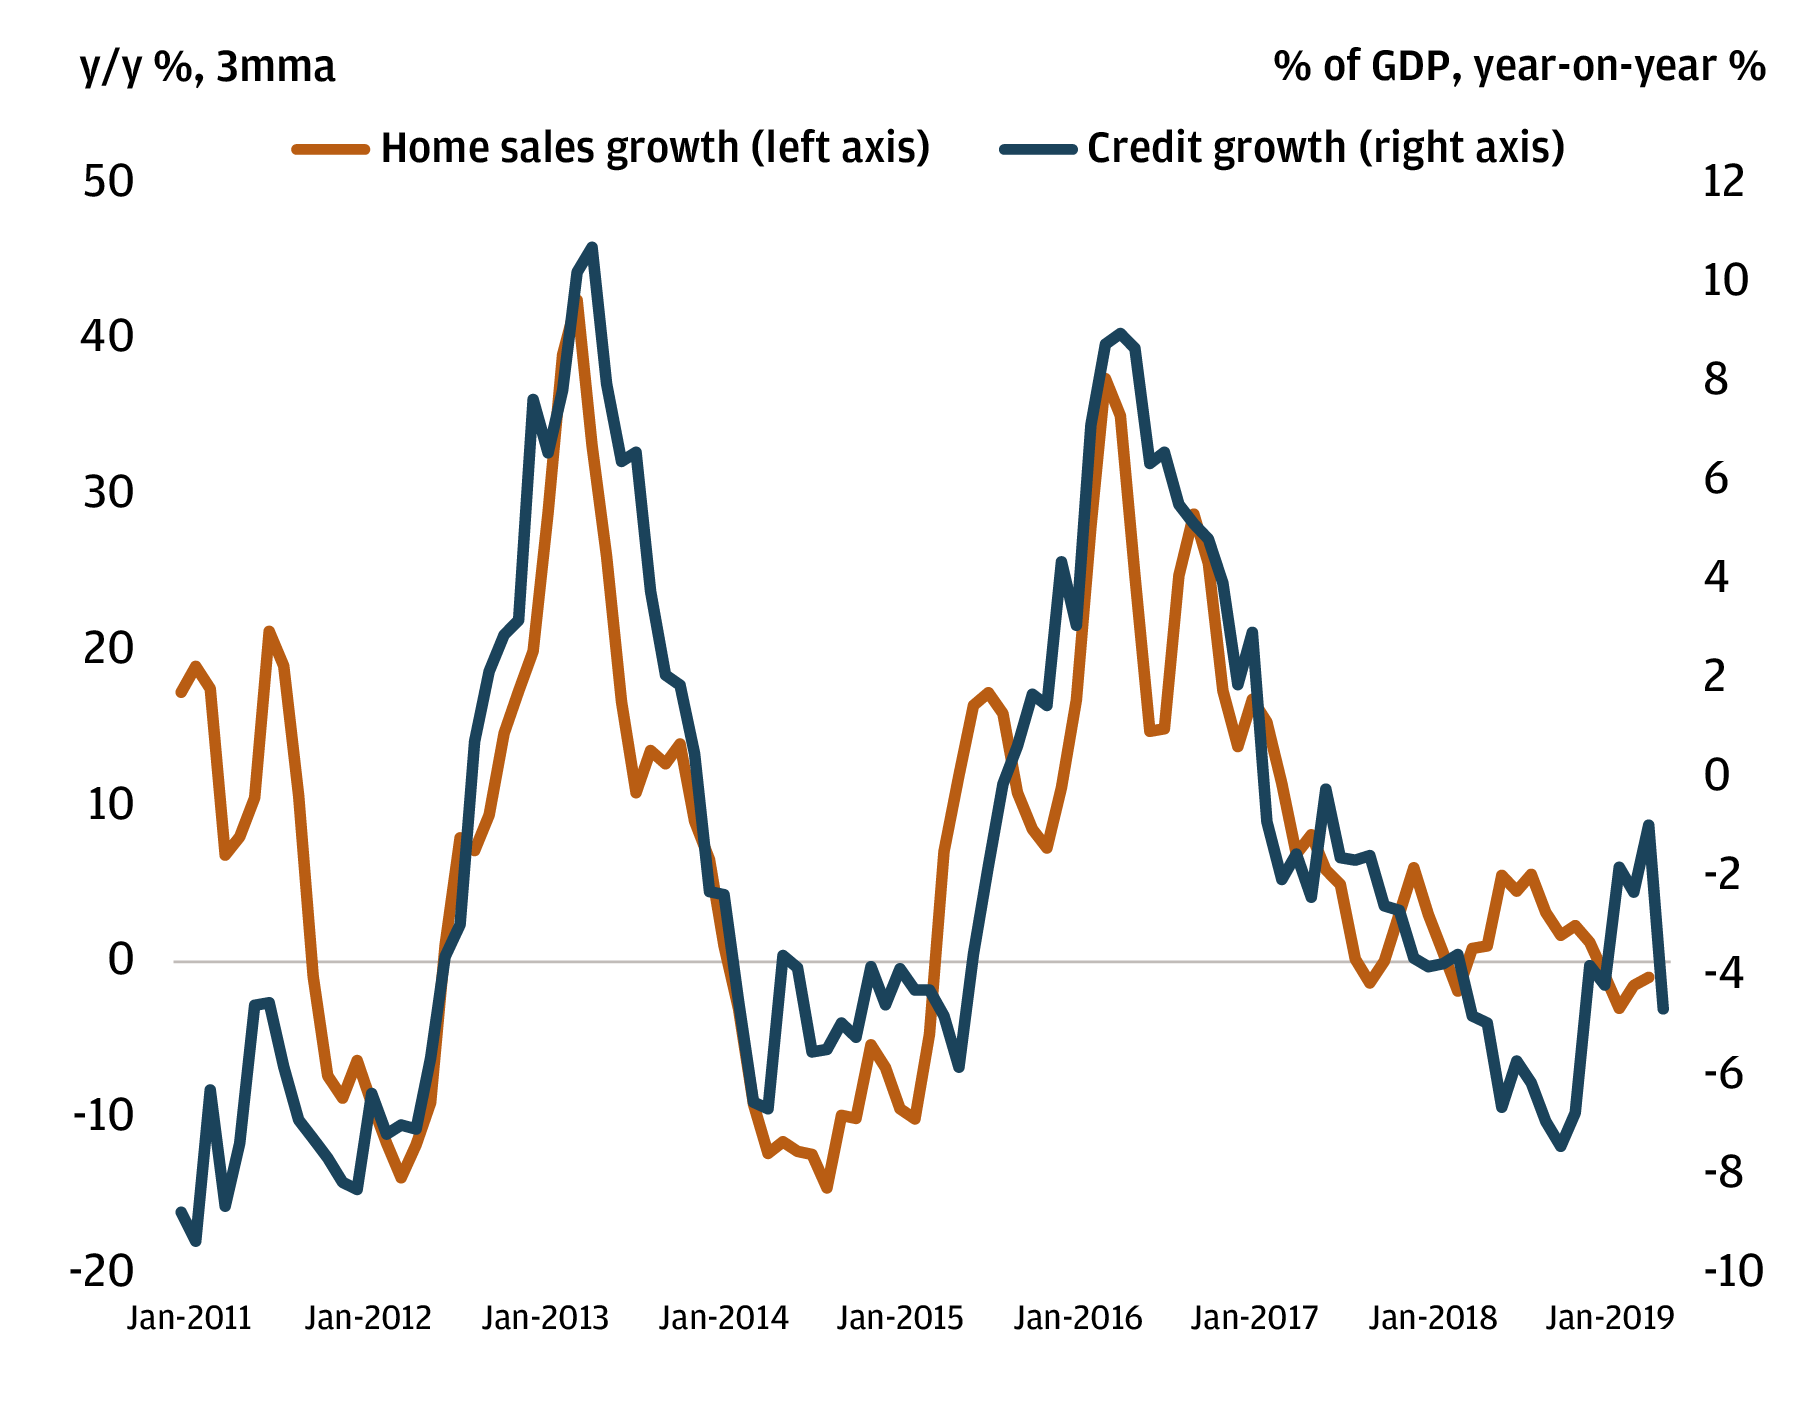 Exhibit 3: China's home sales and credit growth